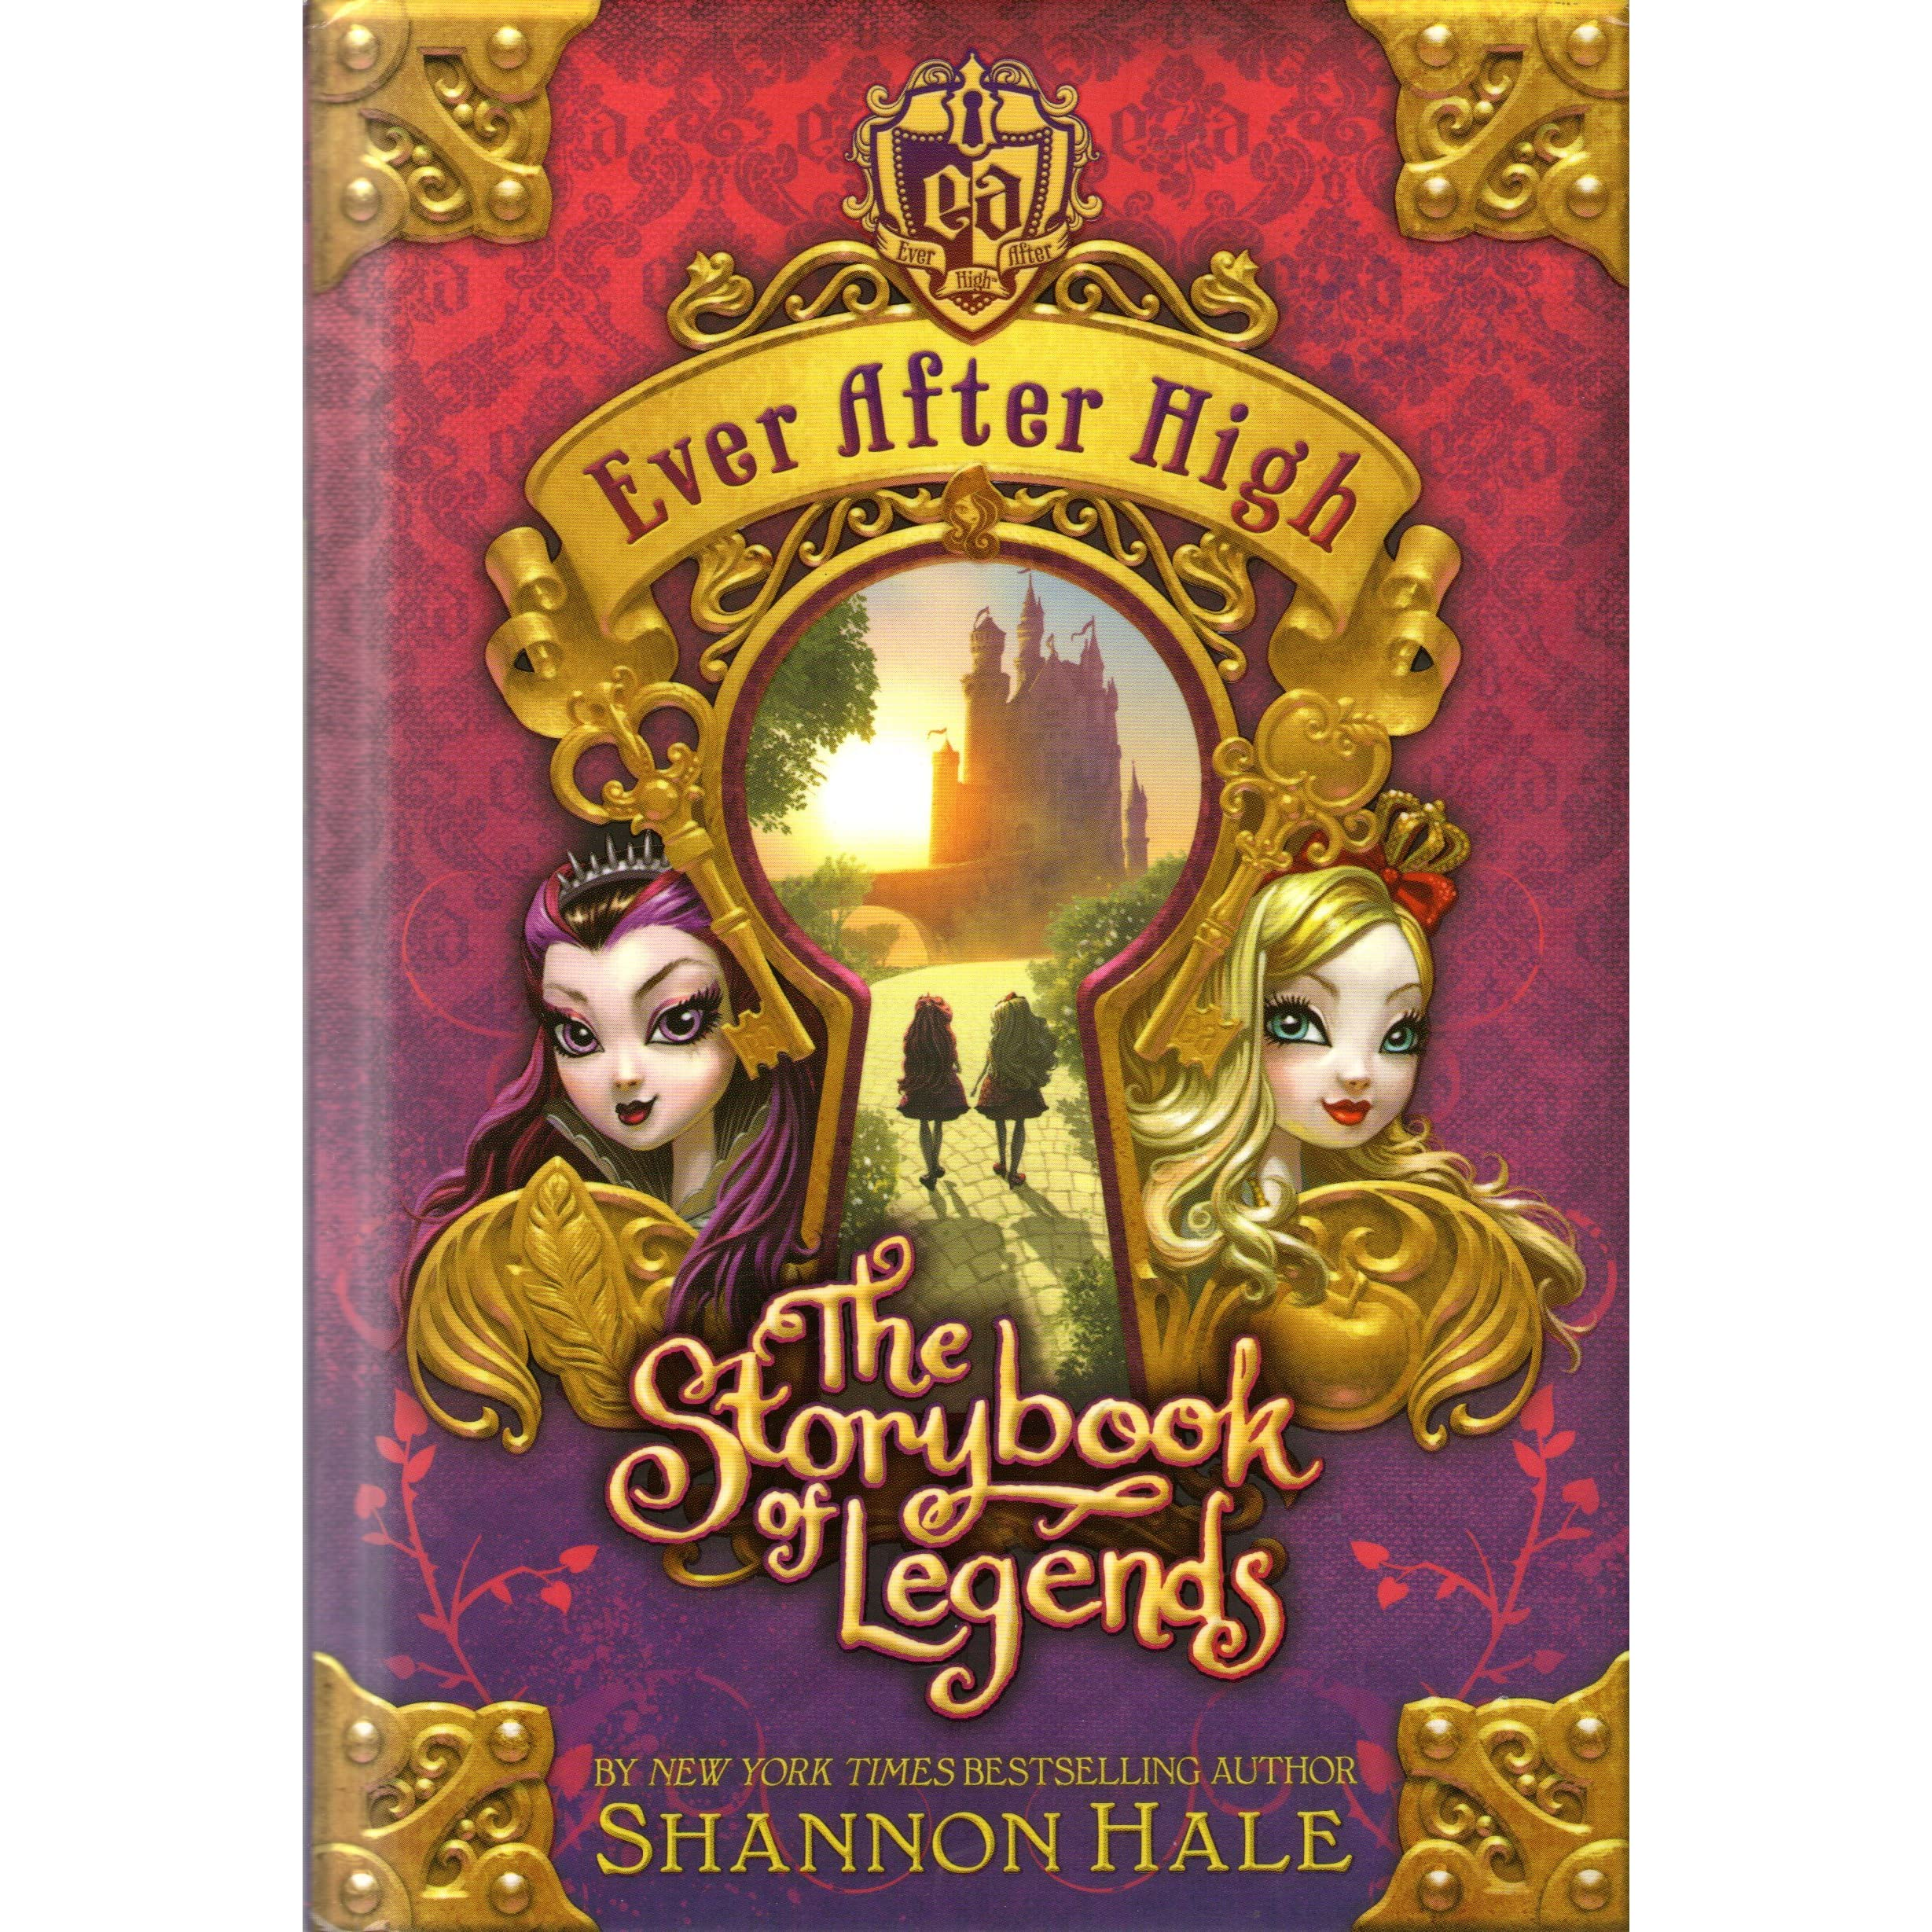 how many ever after high books are there